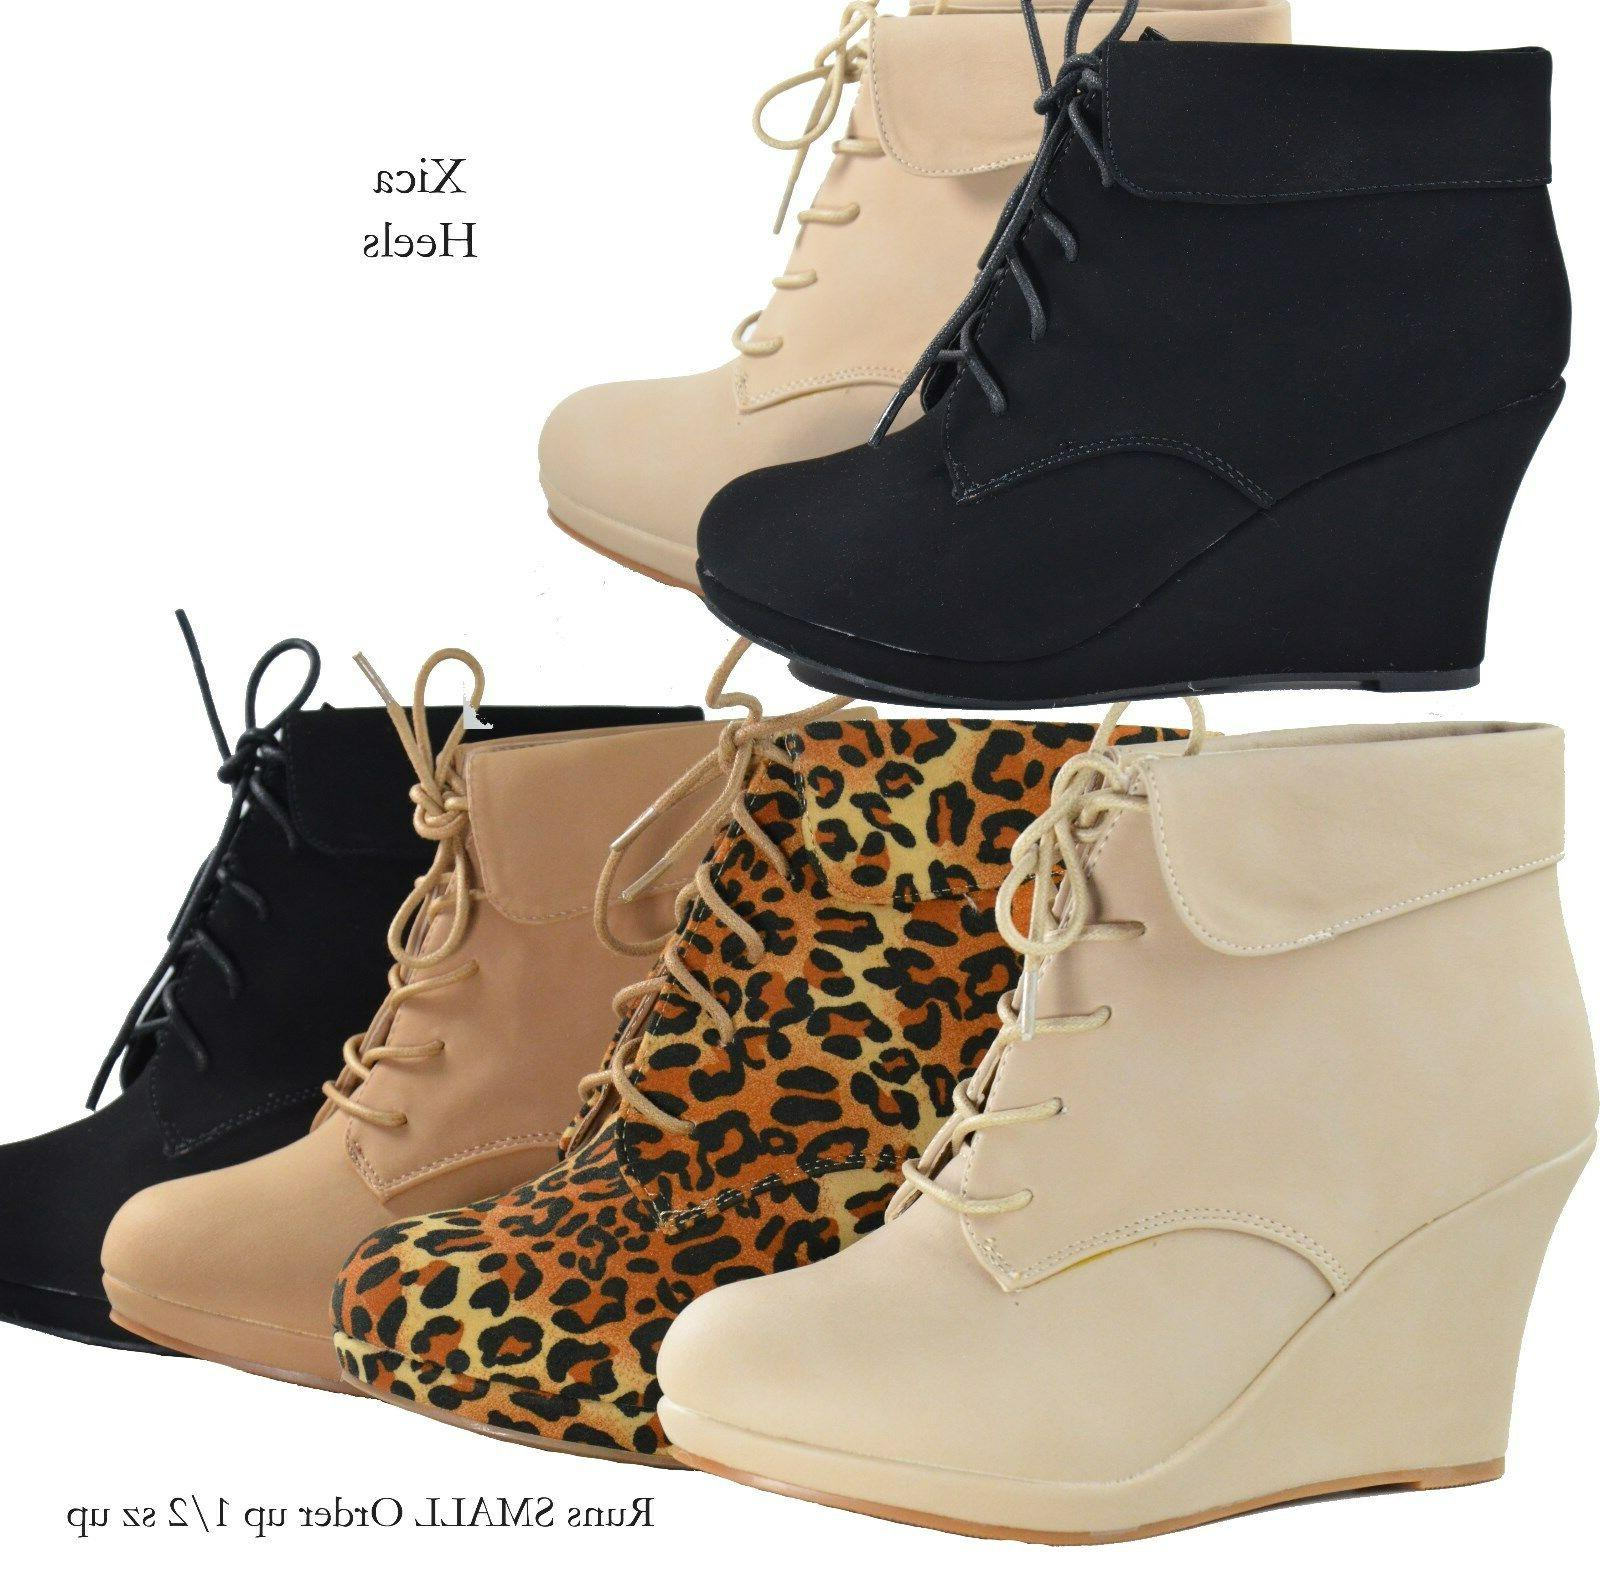 Women's Boots Wedge Almond Platform Lace Up Shoes